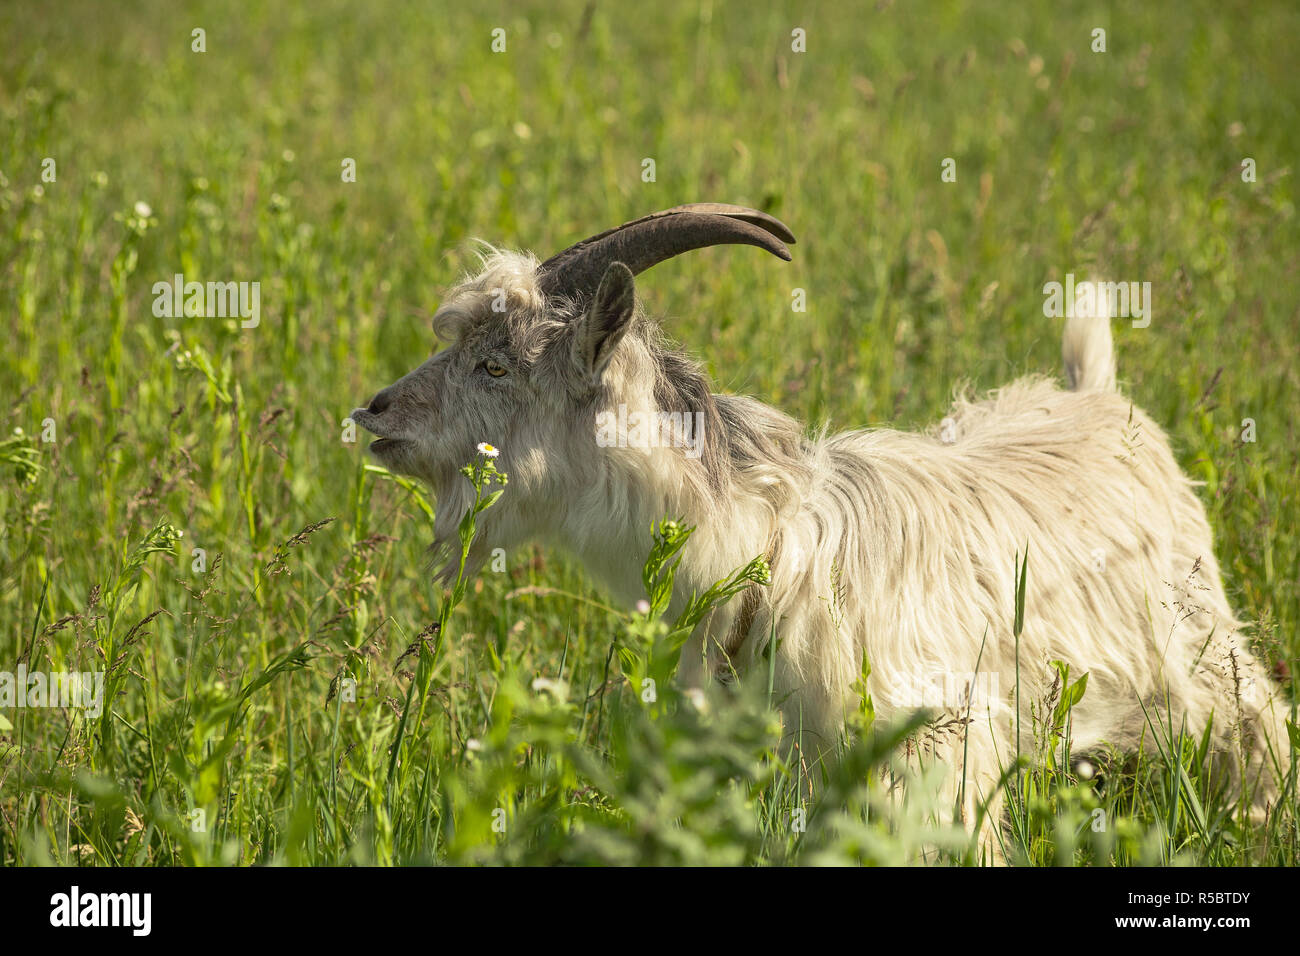 White horned goat grazing on spring sunny green meadow - Stock Image